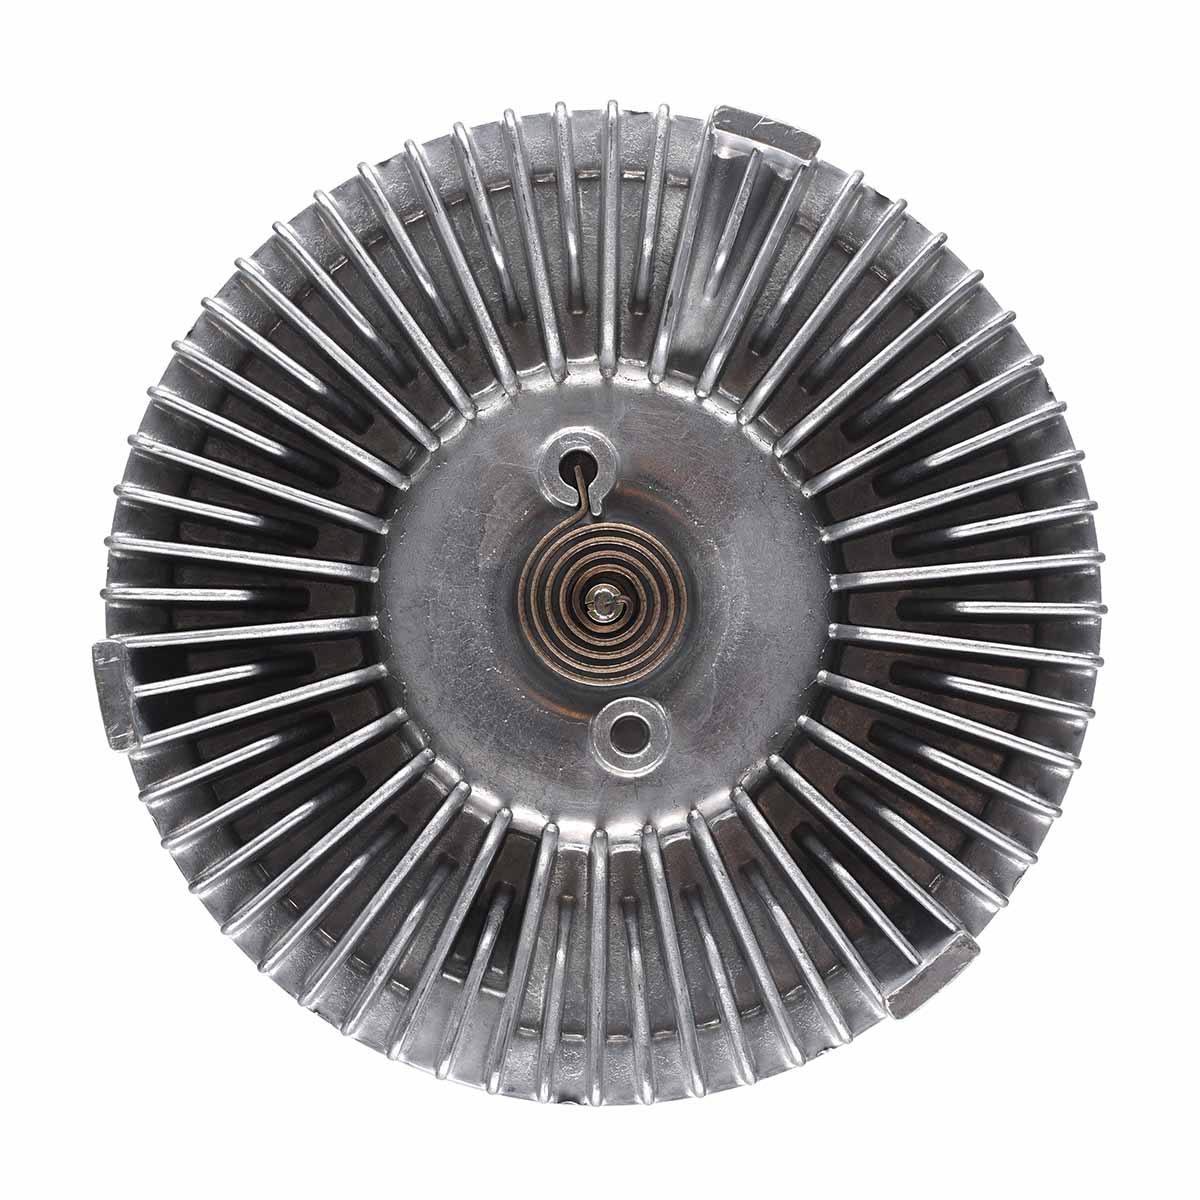 cooling fan clutch for ford crown victoria grand marquis lincoln town car mercury grand marquis 4 6l f6az8a616aa 2795 in fans kits from automobiles  [ 1200 x 1200 Pixel ]